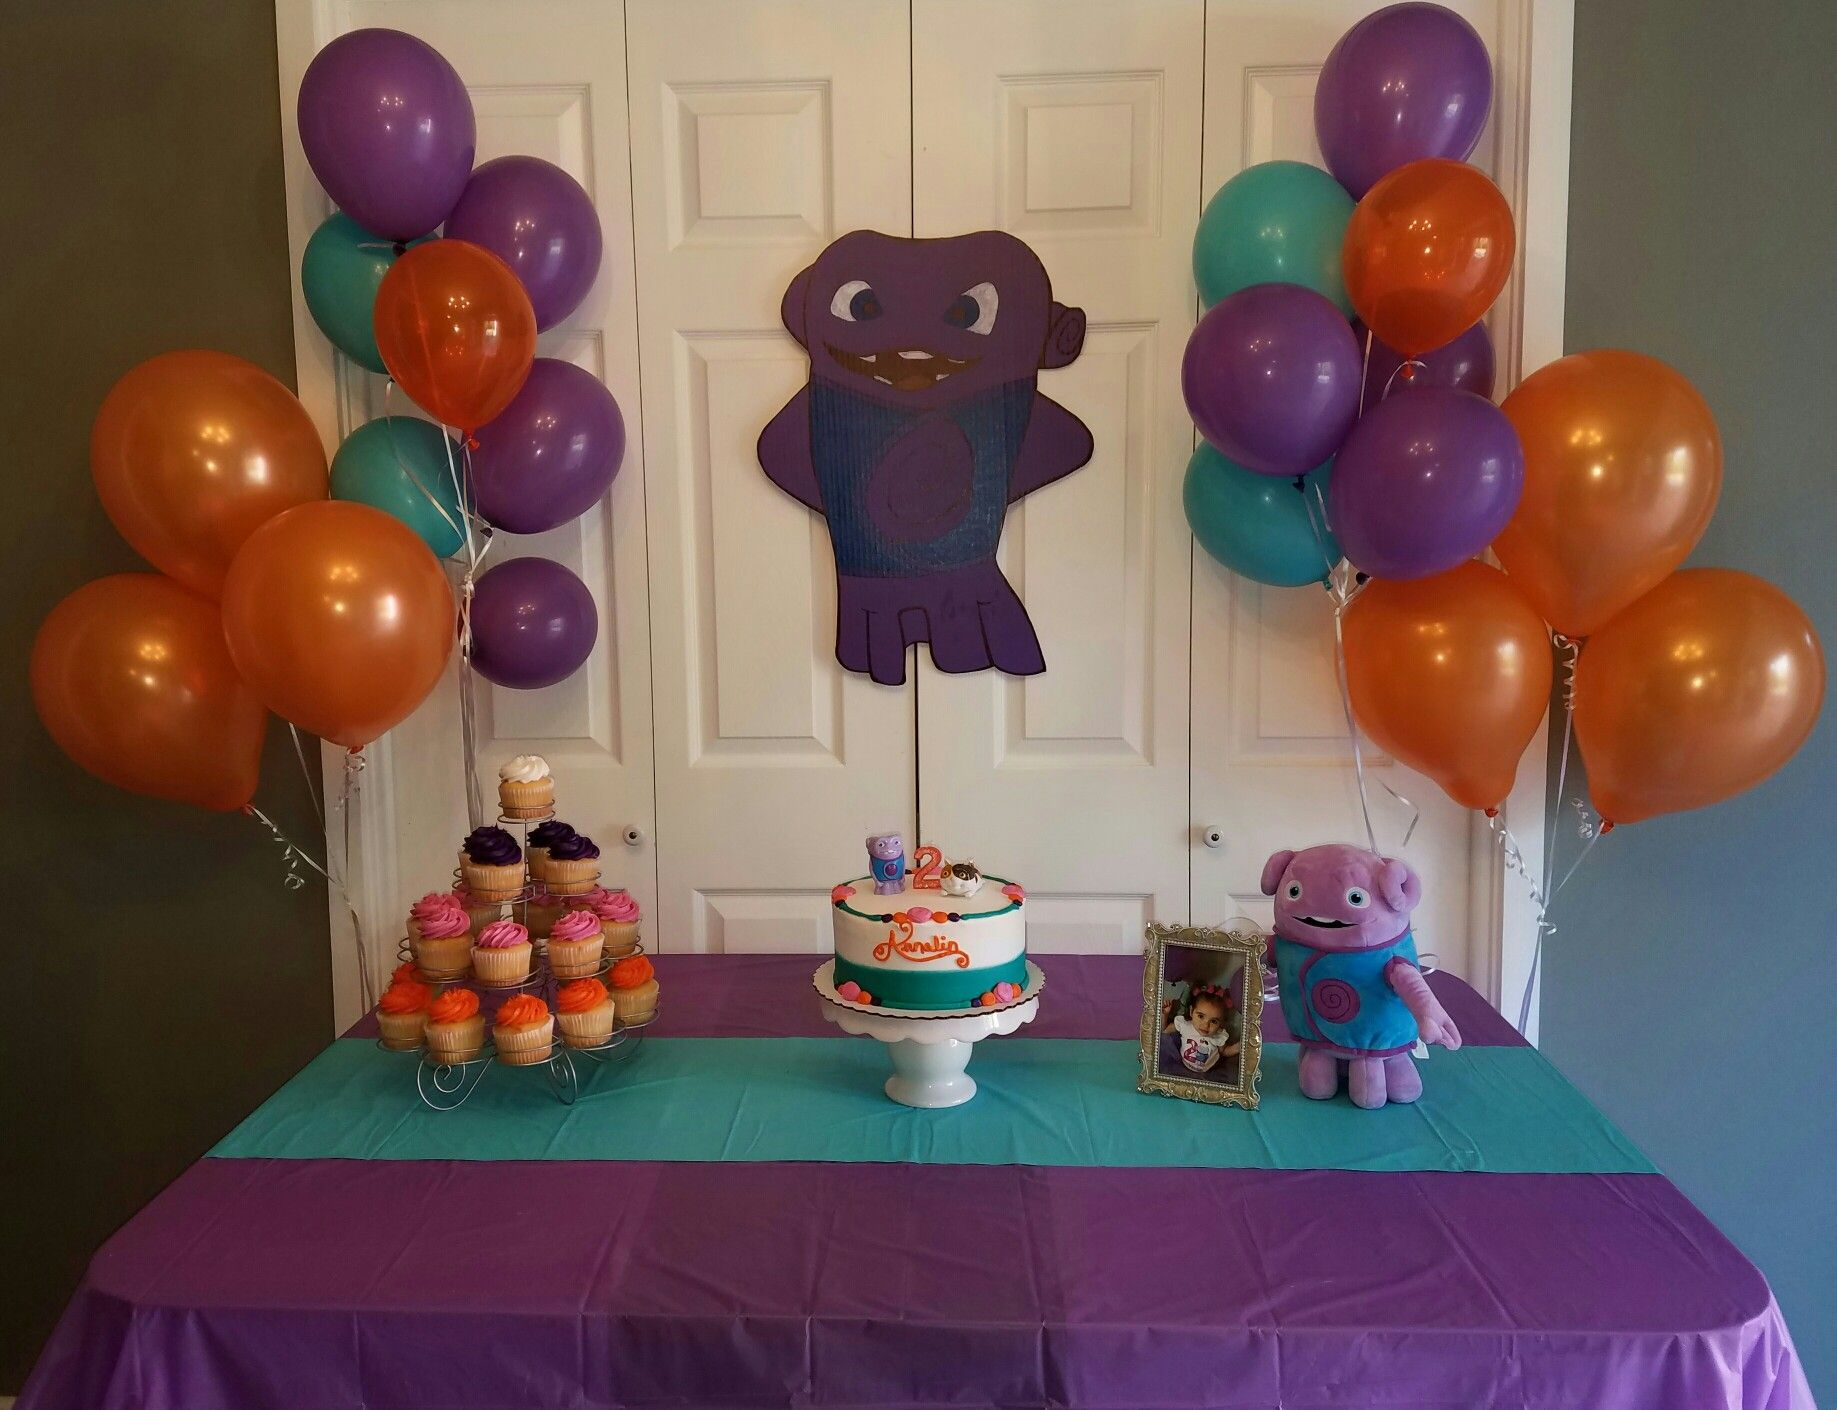 Dreamworks Home Boov Birthday Simple Backdrop Husband Made The Tablecloth  Balloons And Cupcakes To Match Theme